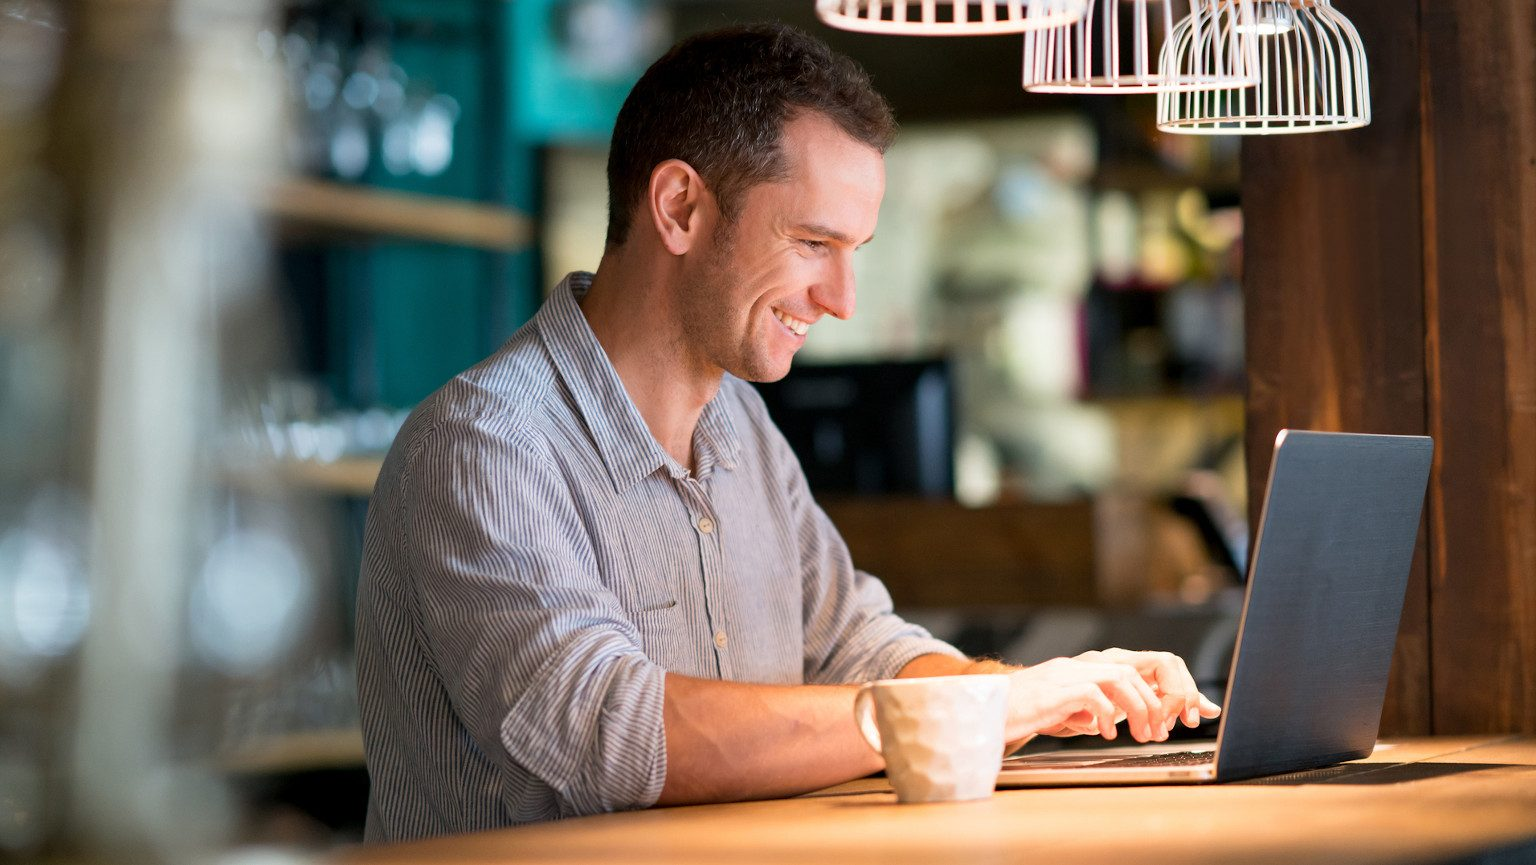 Portrait of a happy man working online at a cafe and drinking a cup of coffee